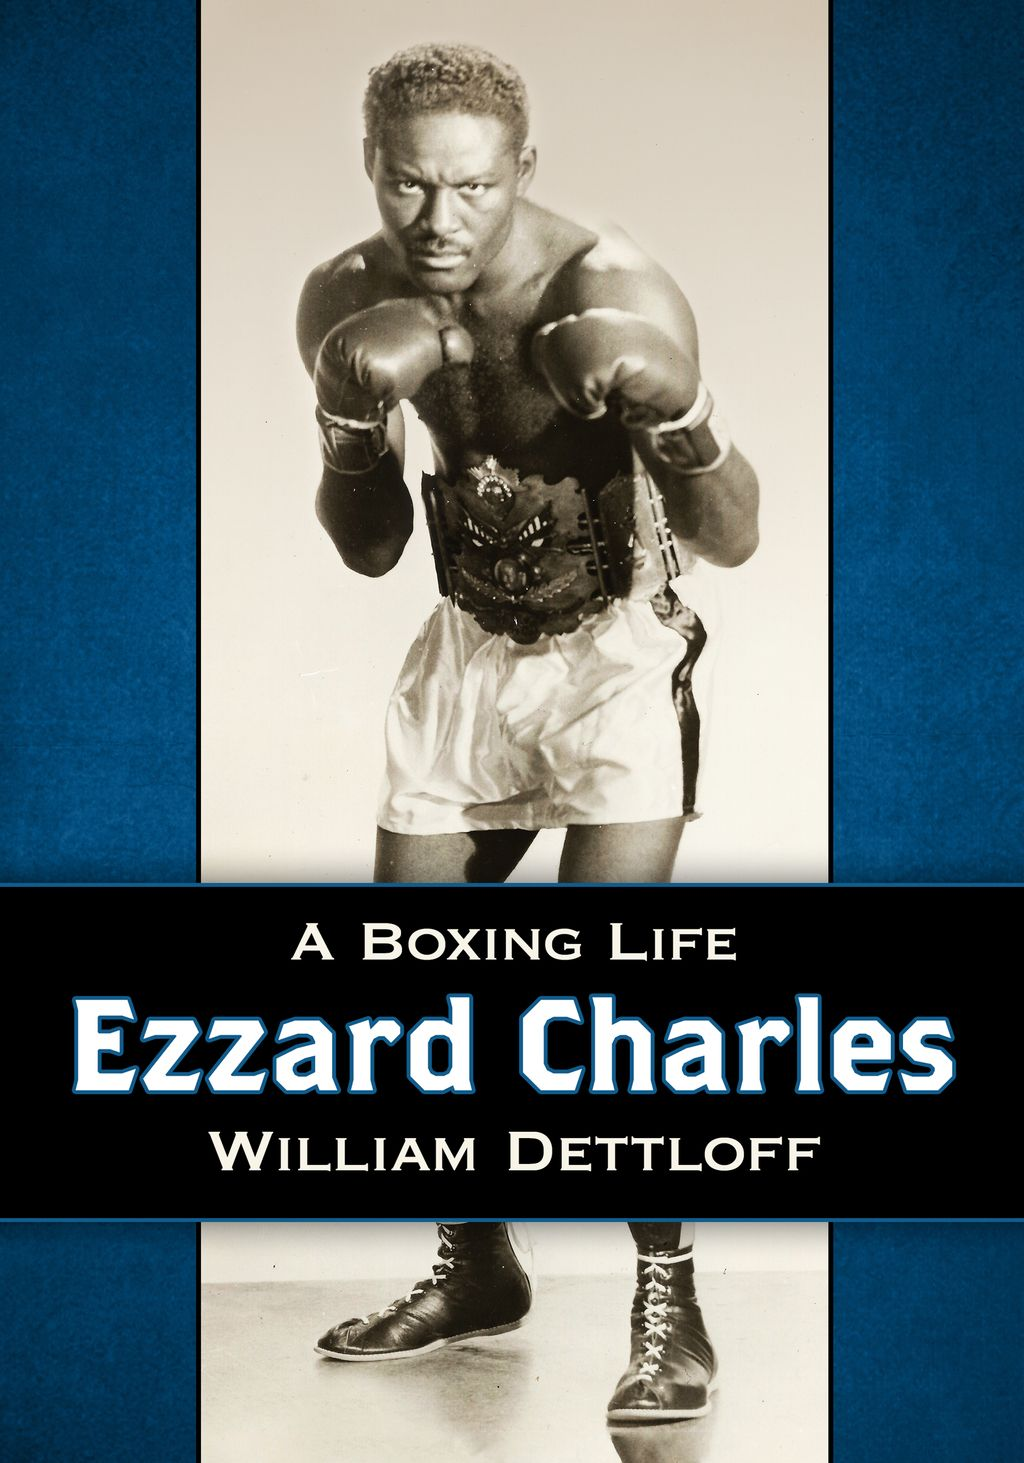 Ezzard Charles A Boxing Life (eBook) True story books